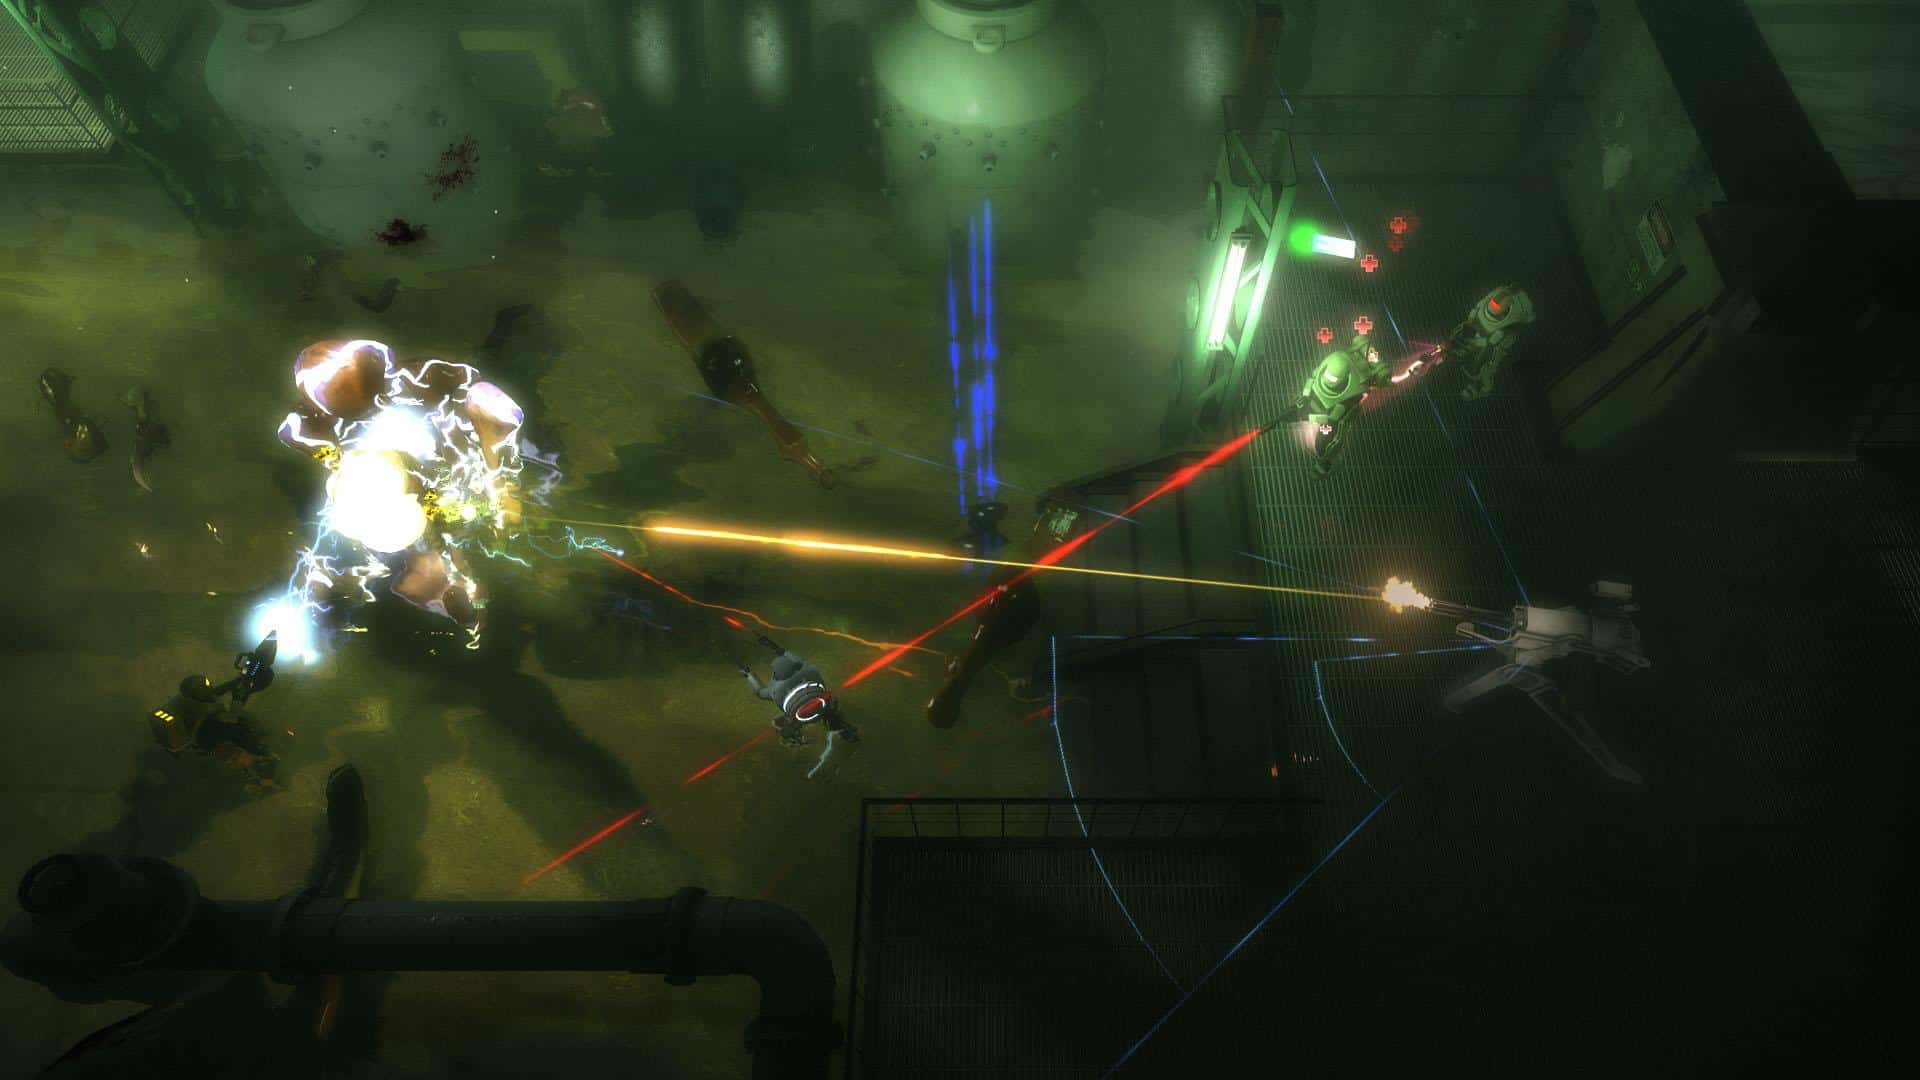 Alien Swarm - a free top down shooter game from Valve